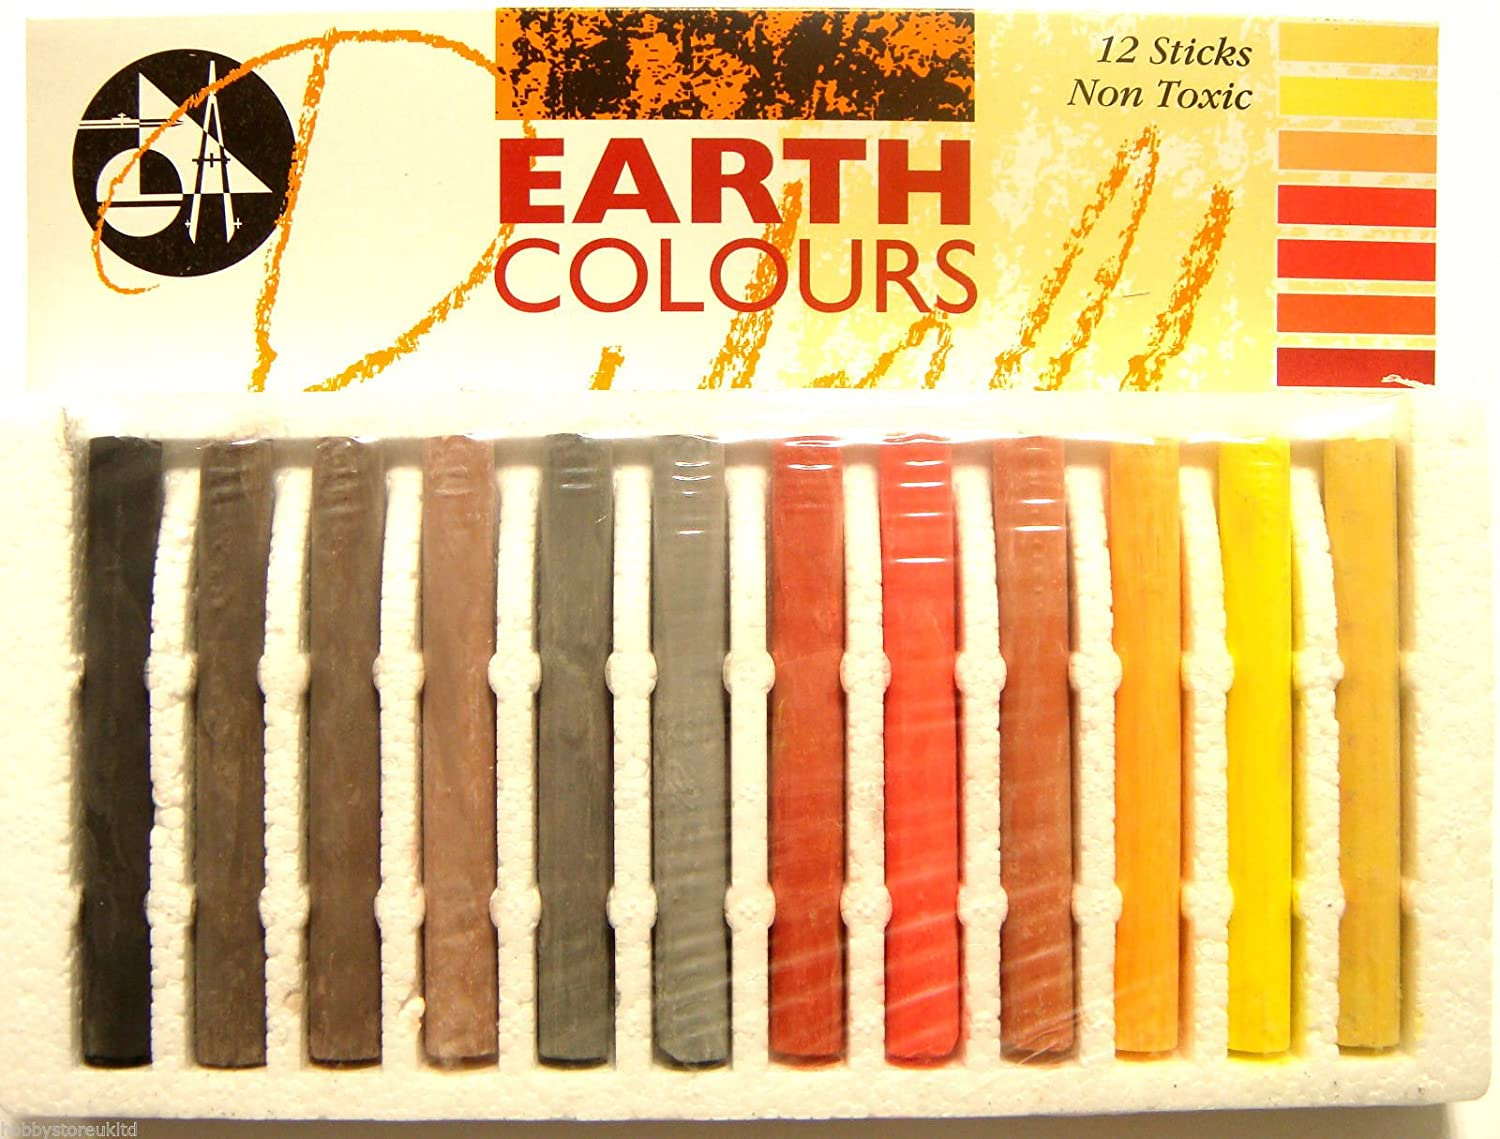 Compressed Charcoal Set Compressed Coloured Pastel Sticks Sets Non Toxic New (Earth) Jakar